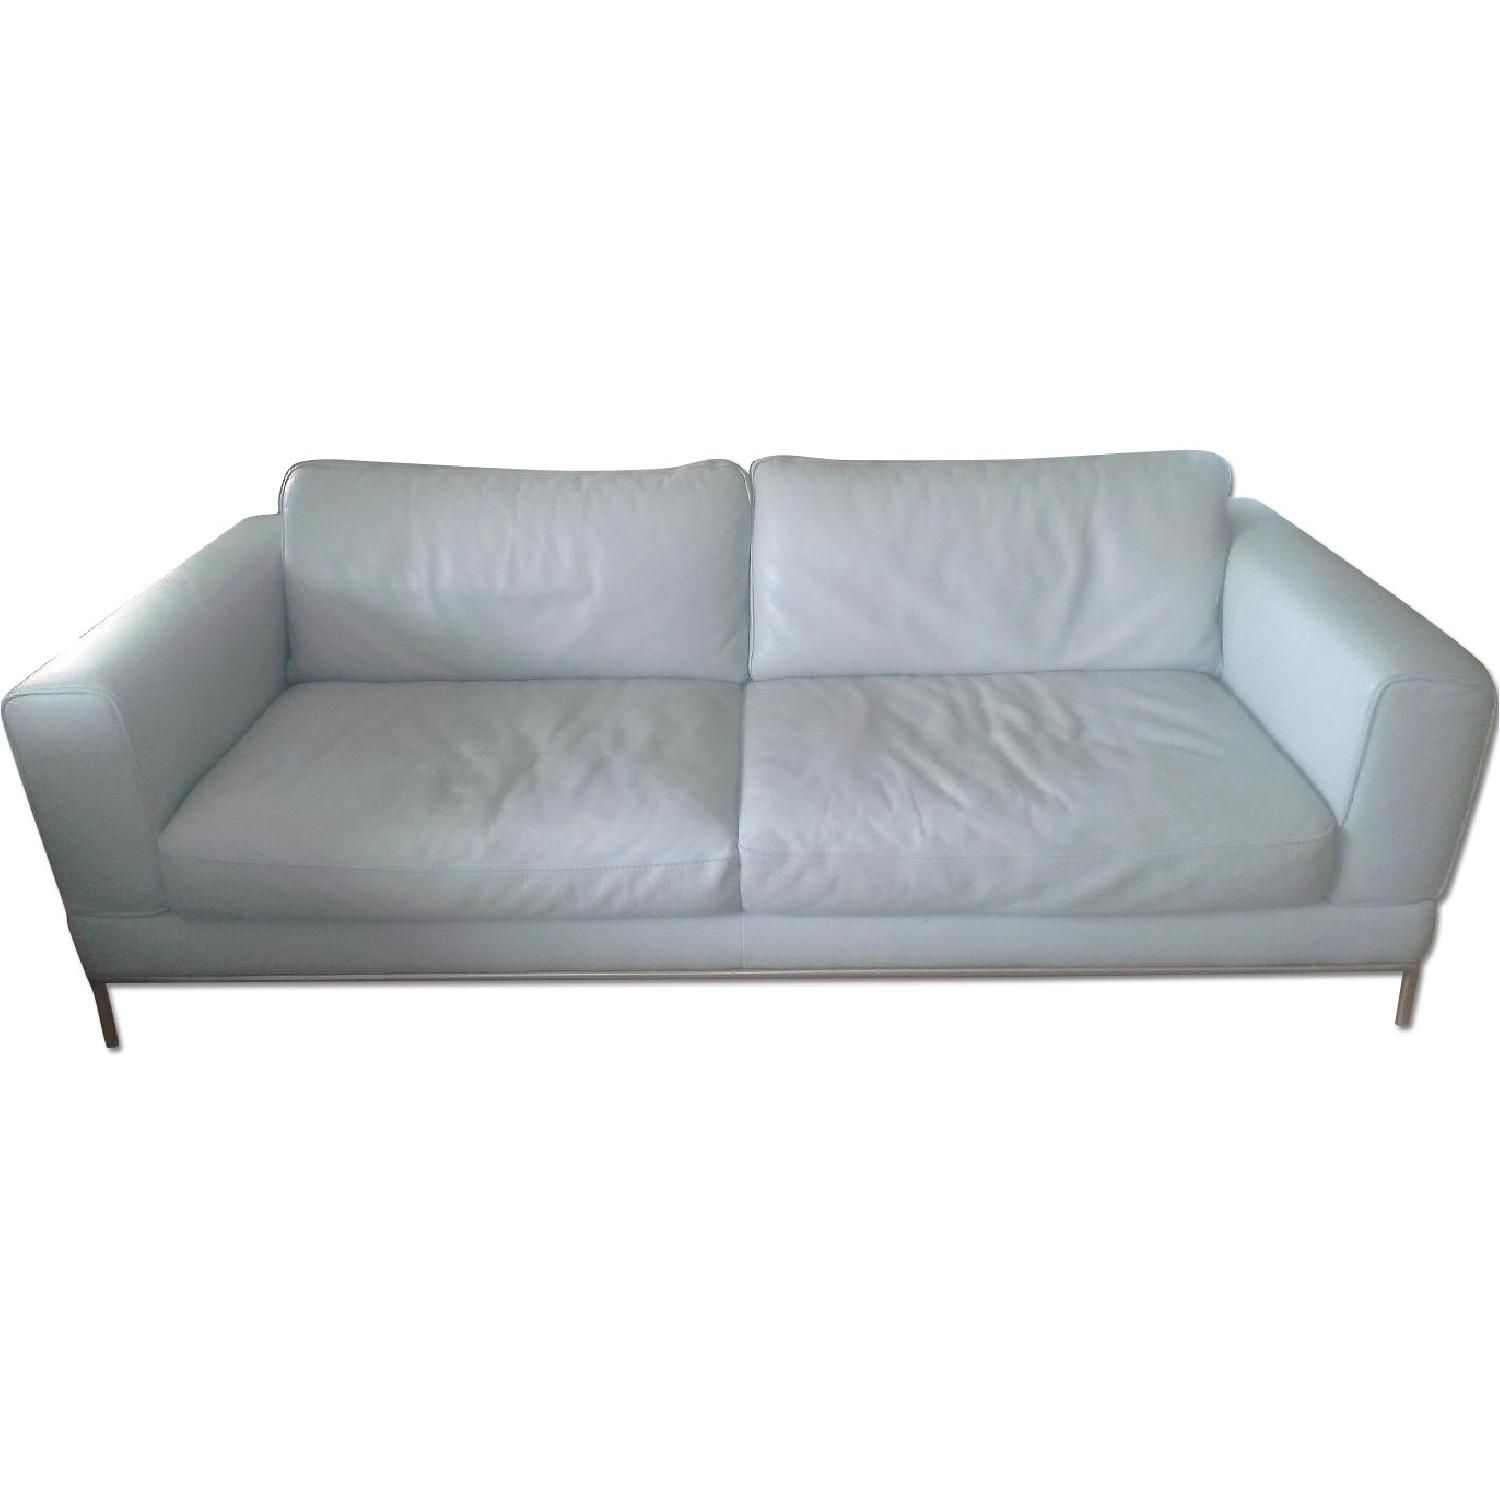 Ikea Arild Leather Sofa Home Sell Used Furniture Leather Sofa Sofa